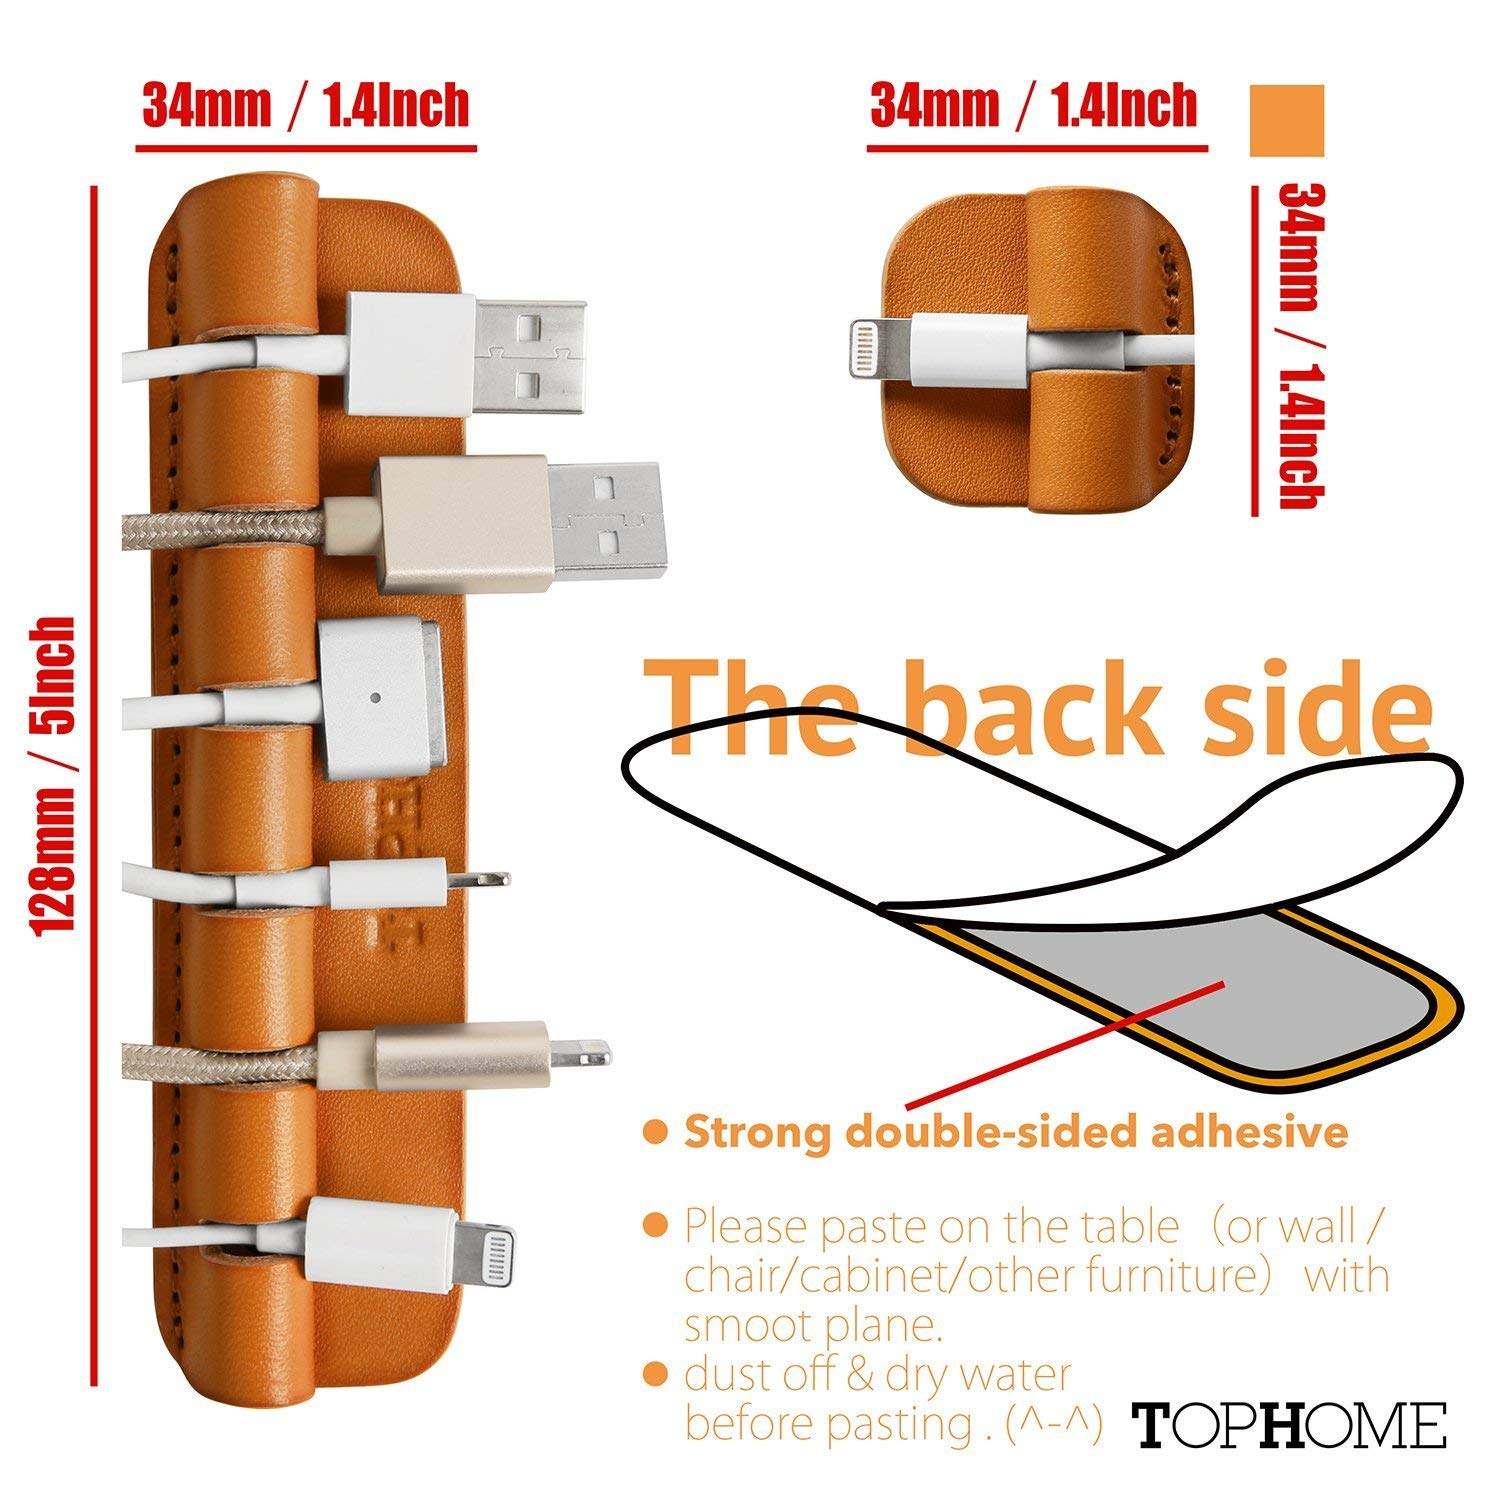 TOPHOME Multifunction Cable Organizer Cord Management Wire Management System Self Adhesive Genuine Leather USB Cable Clips 3 Pieces Orange by TOPHOME (Image #4)